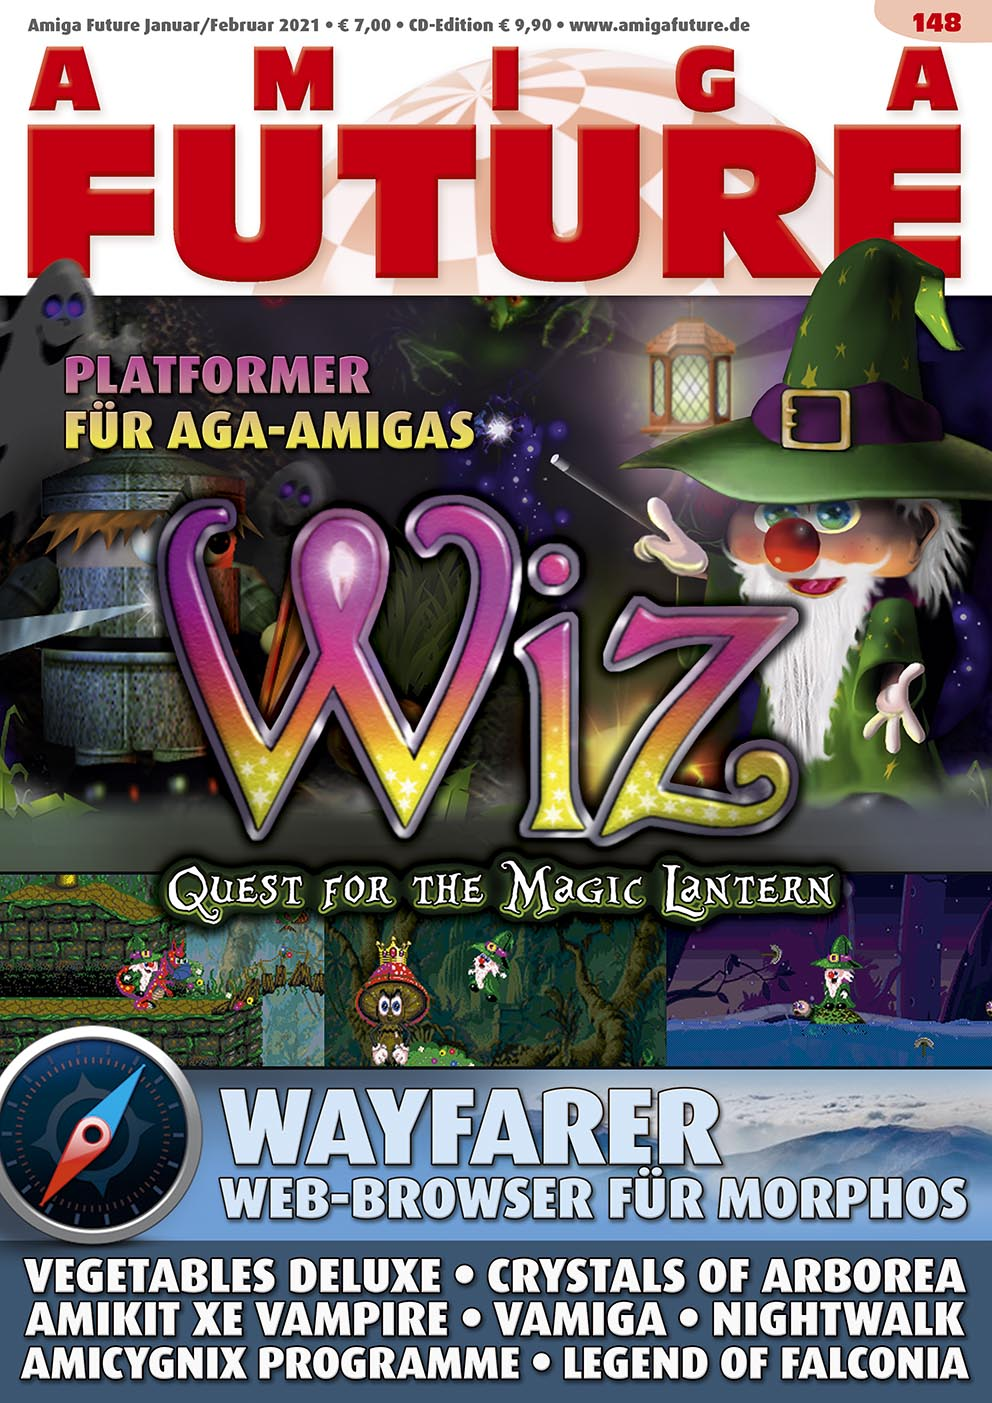 Amiga Future Issue 148